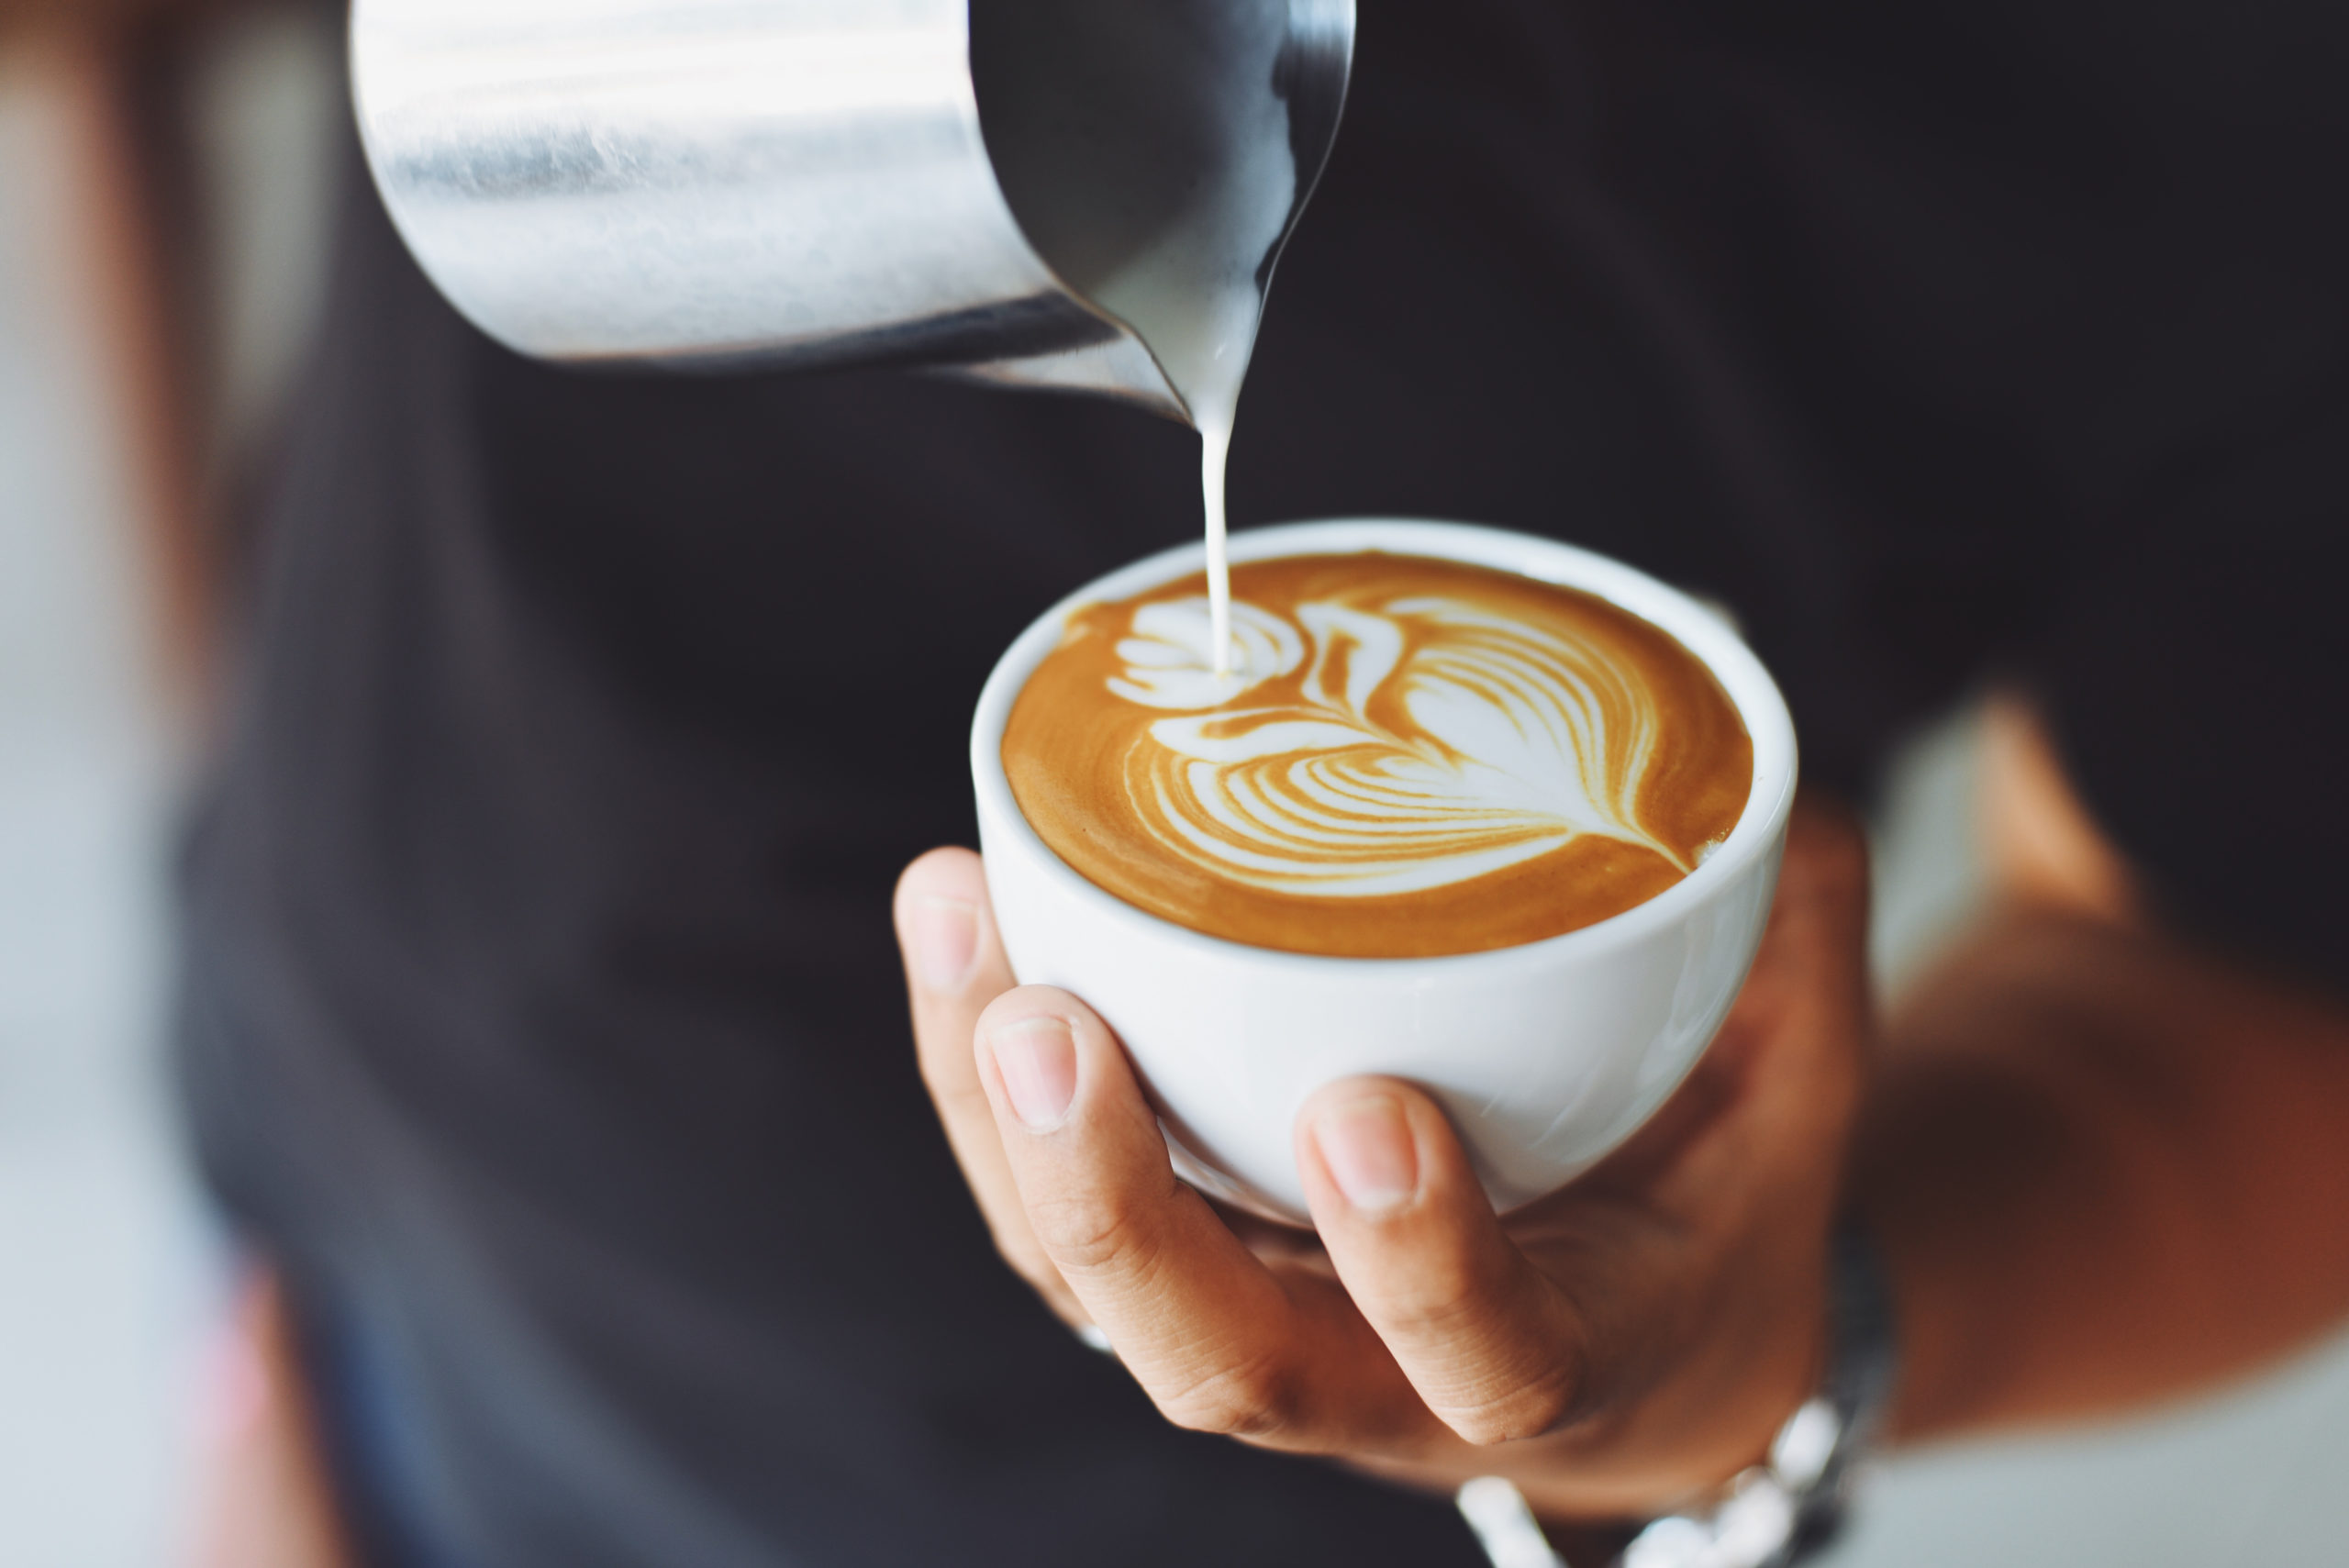 Barista making a latte and a frothy design